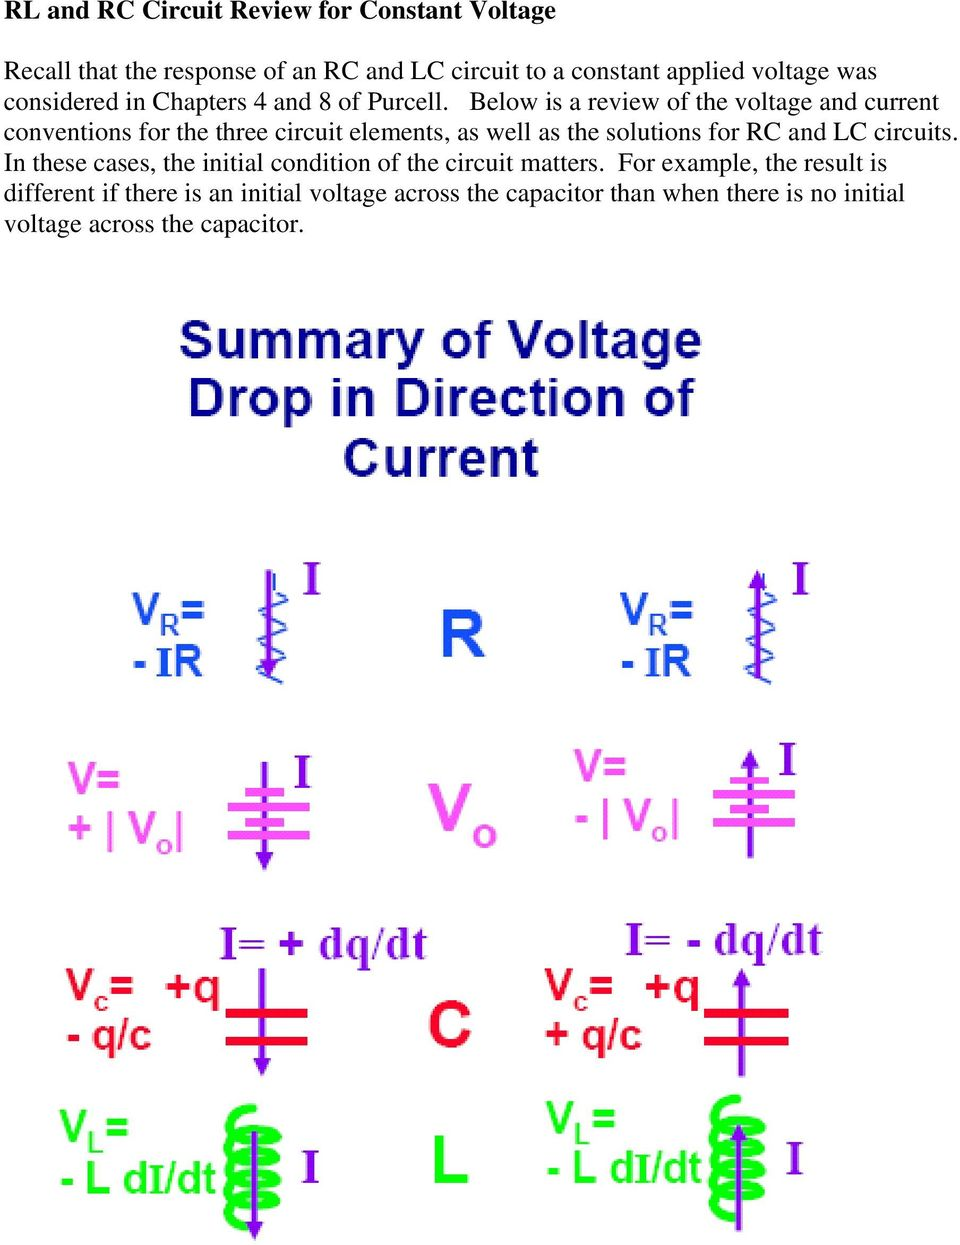 Physics 15b Lab 4 Responses To Time Dependent Voltages Pdf Constant Voltage Circuit Below Is A Review Of The And Current Conventions For Three Elements